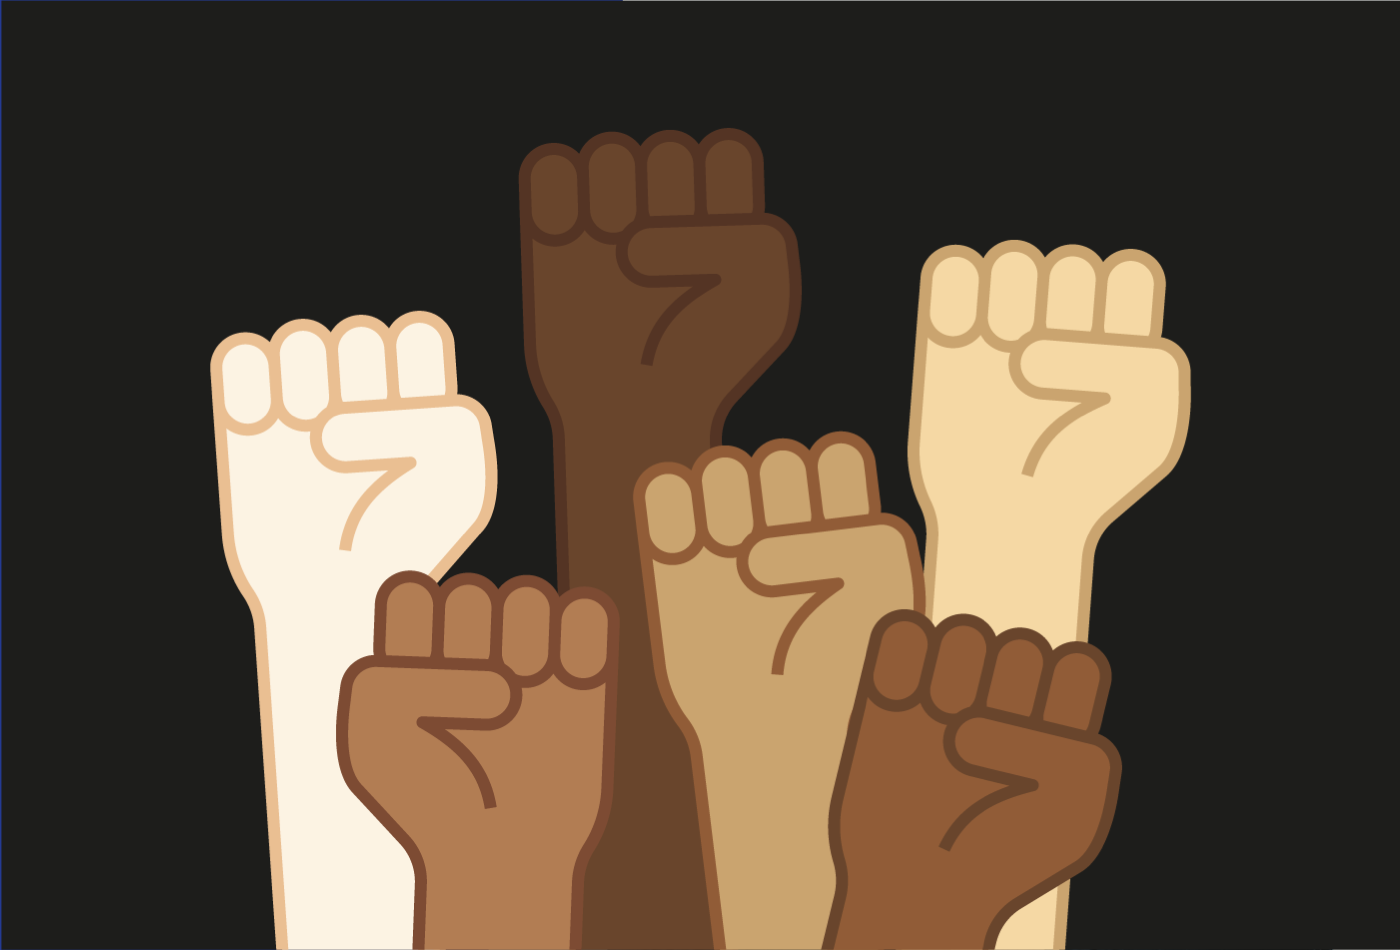 Racial Injustice: No-one Should Feel Alone